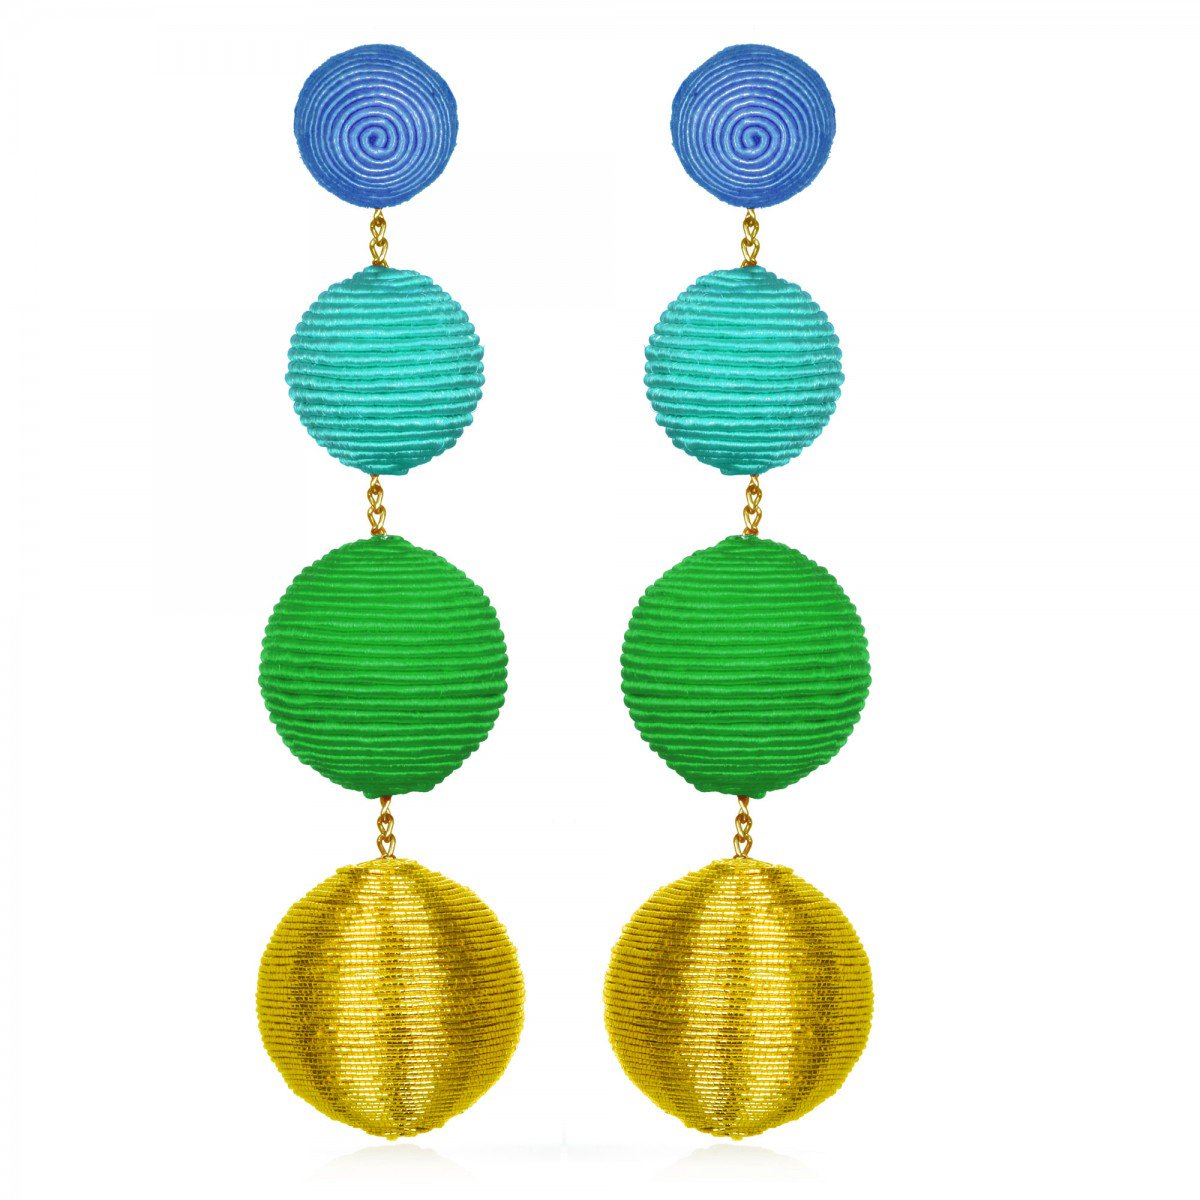 Metallic Gumball Earrings by SUZANNA DAI